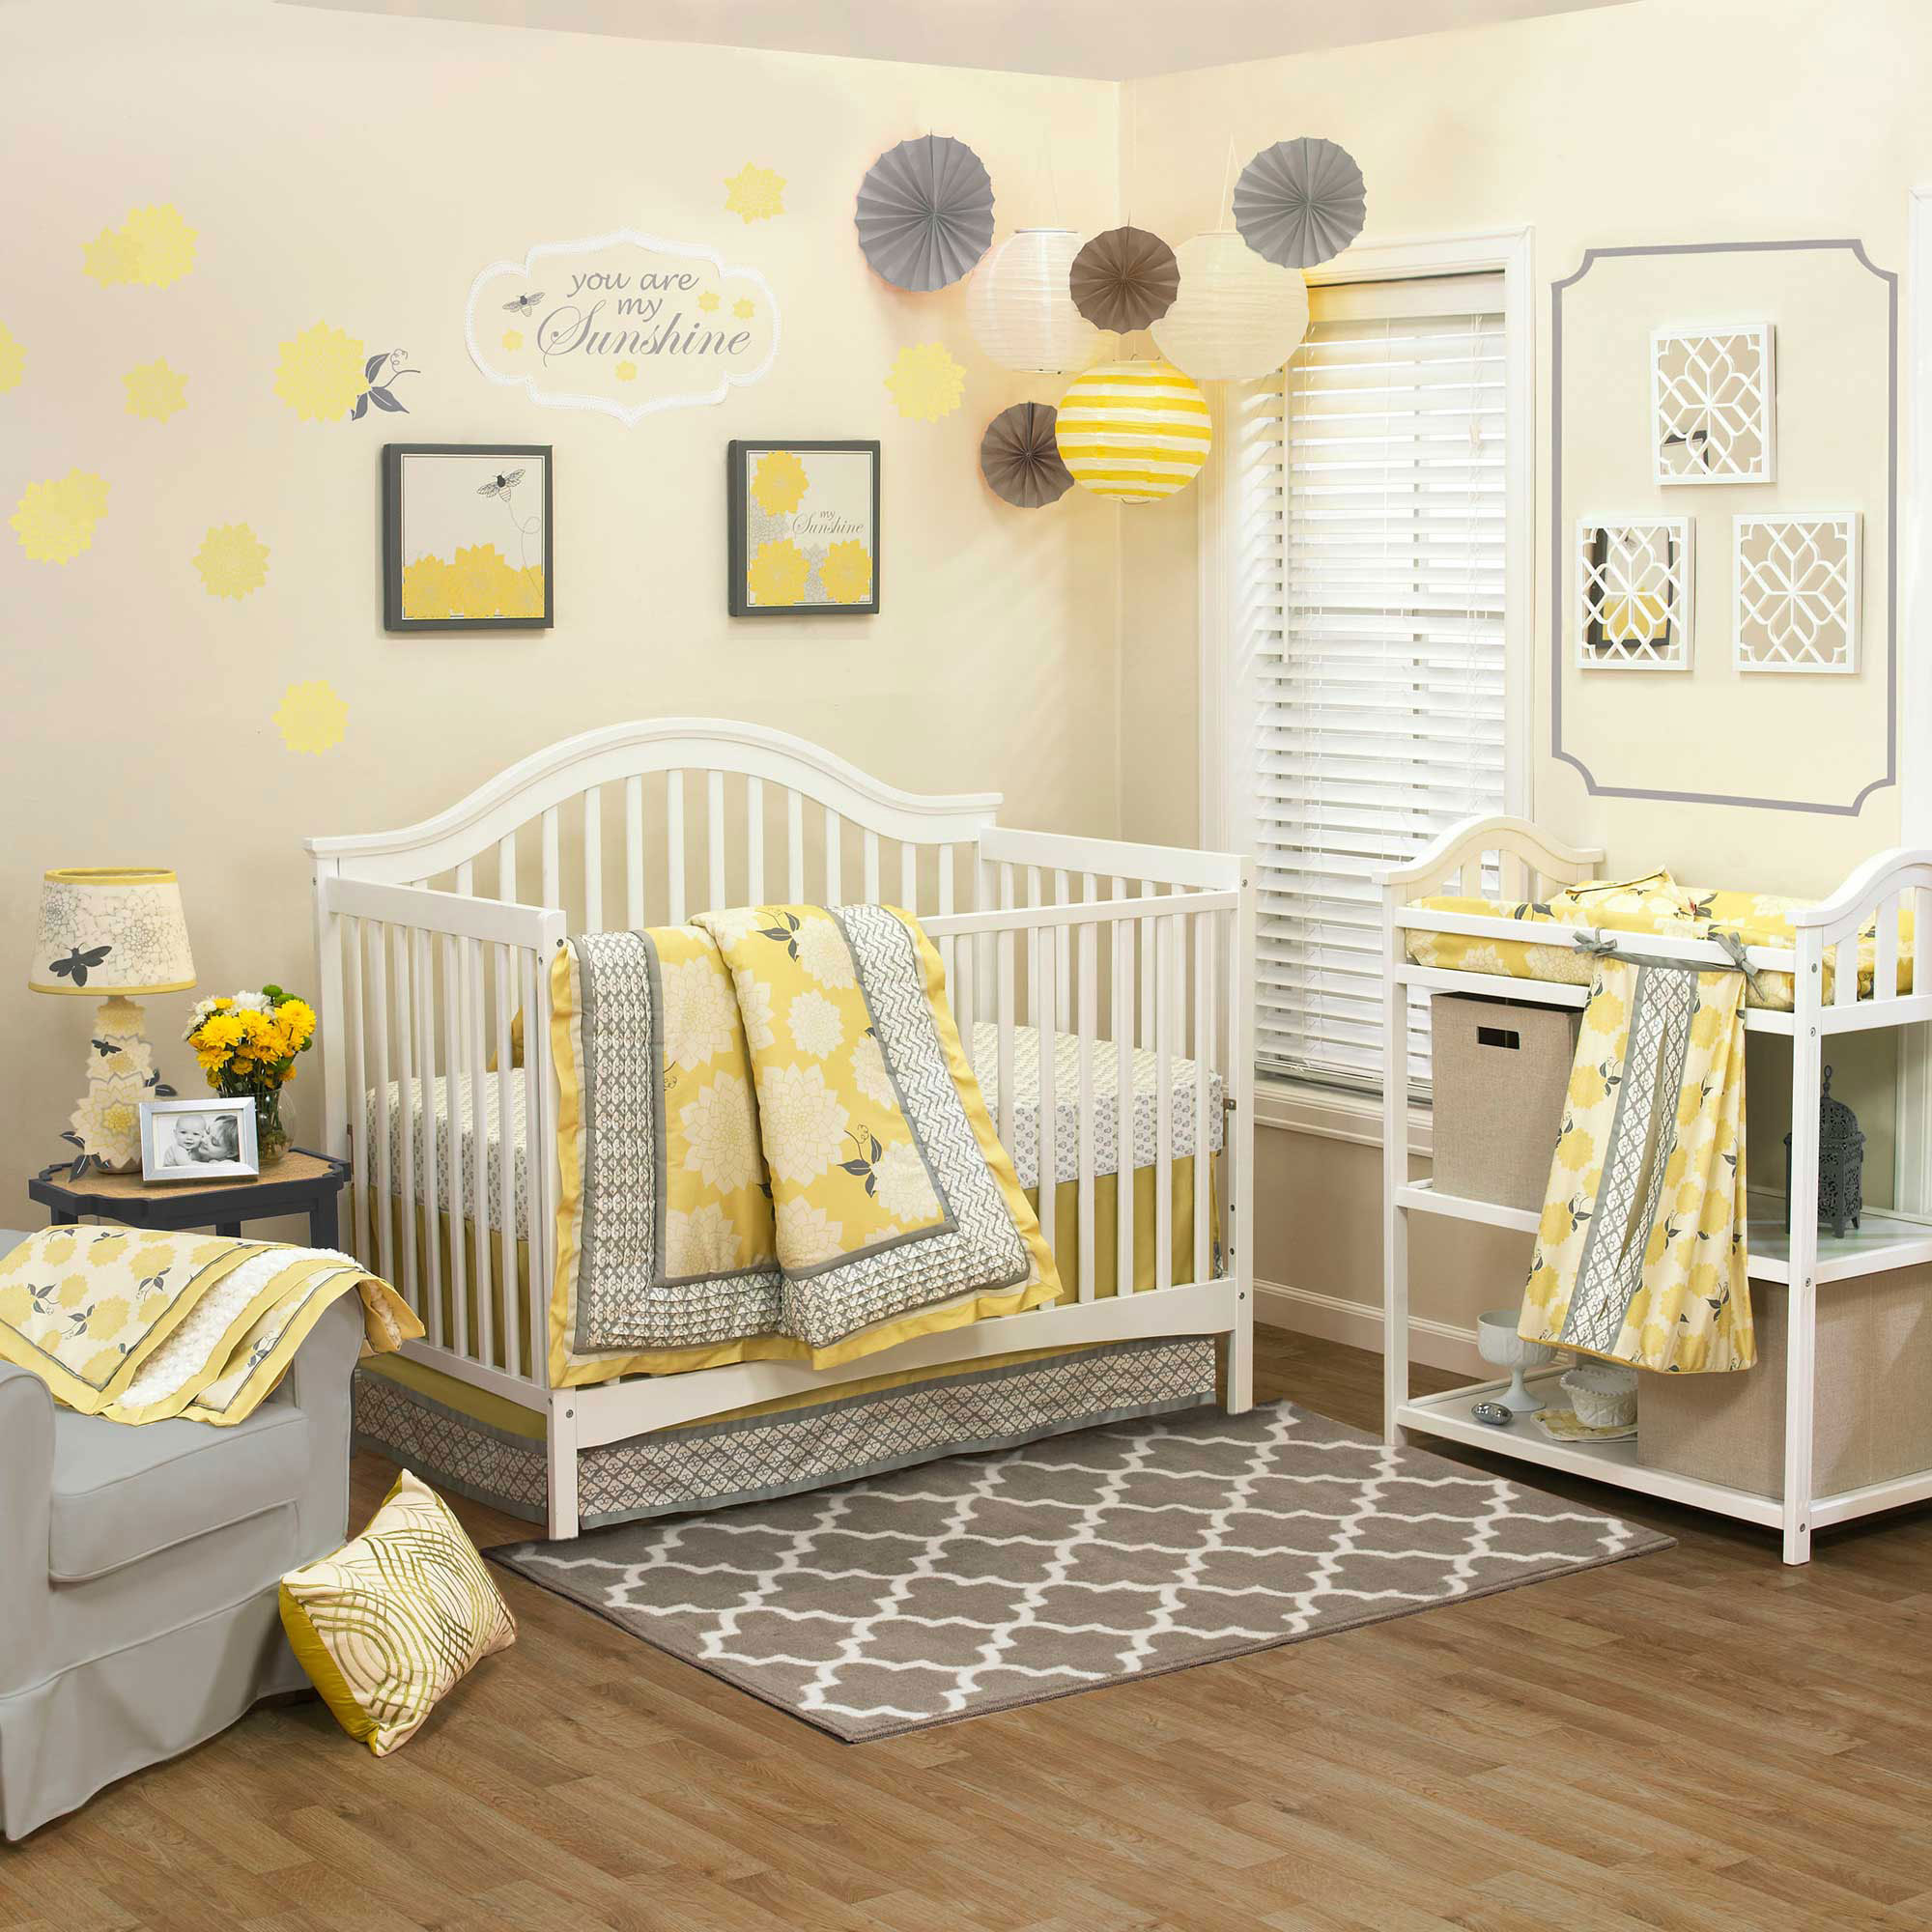 Nursery Themes For Girls Baby Girl Nursery Ideas 10 Pretty Examples Decorating Room